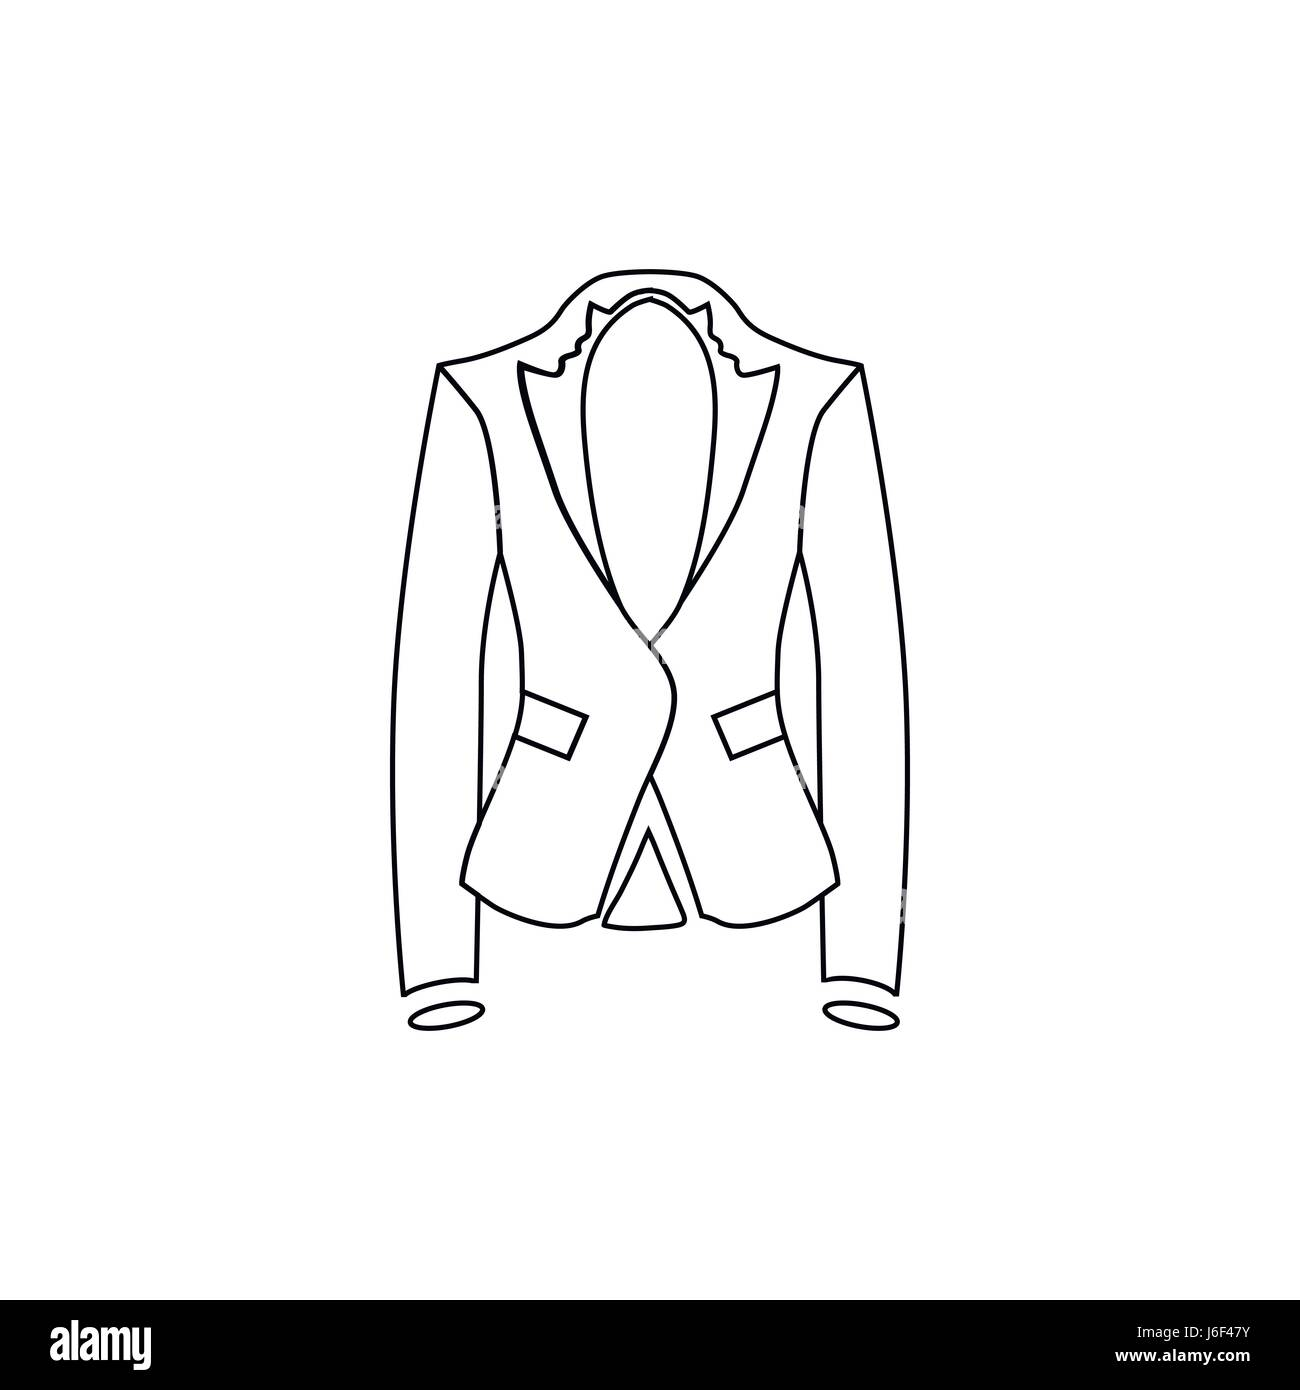 f91d0a6bed8b Woman jacket icon, outline style Stock Vector Art & Illustration ...